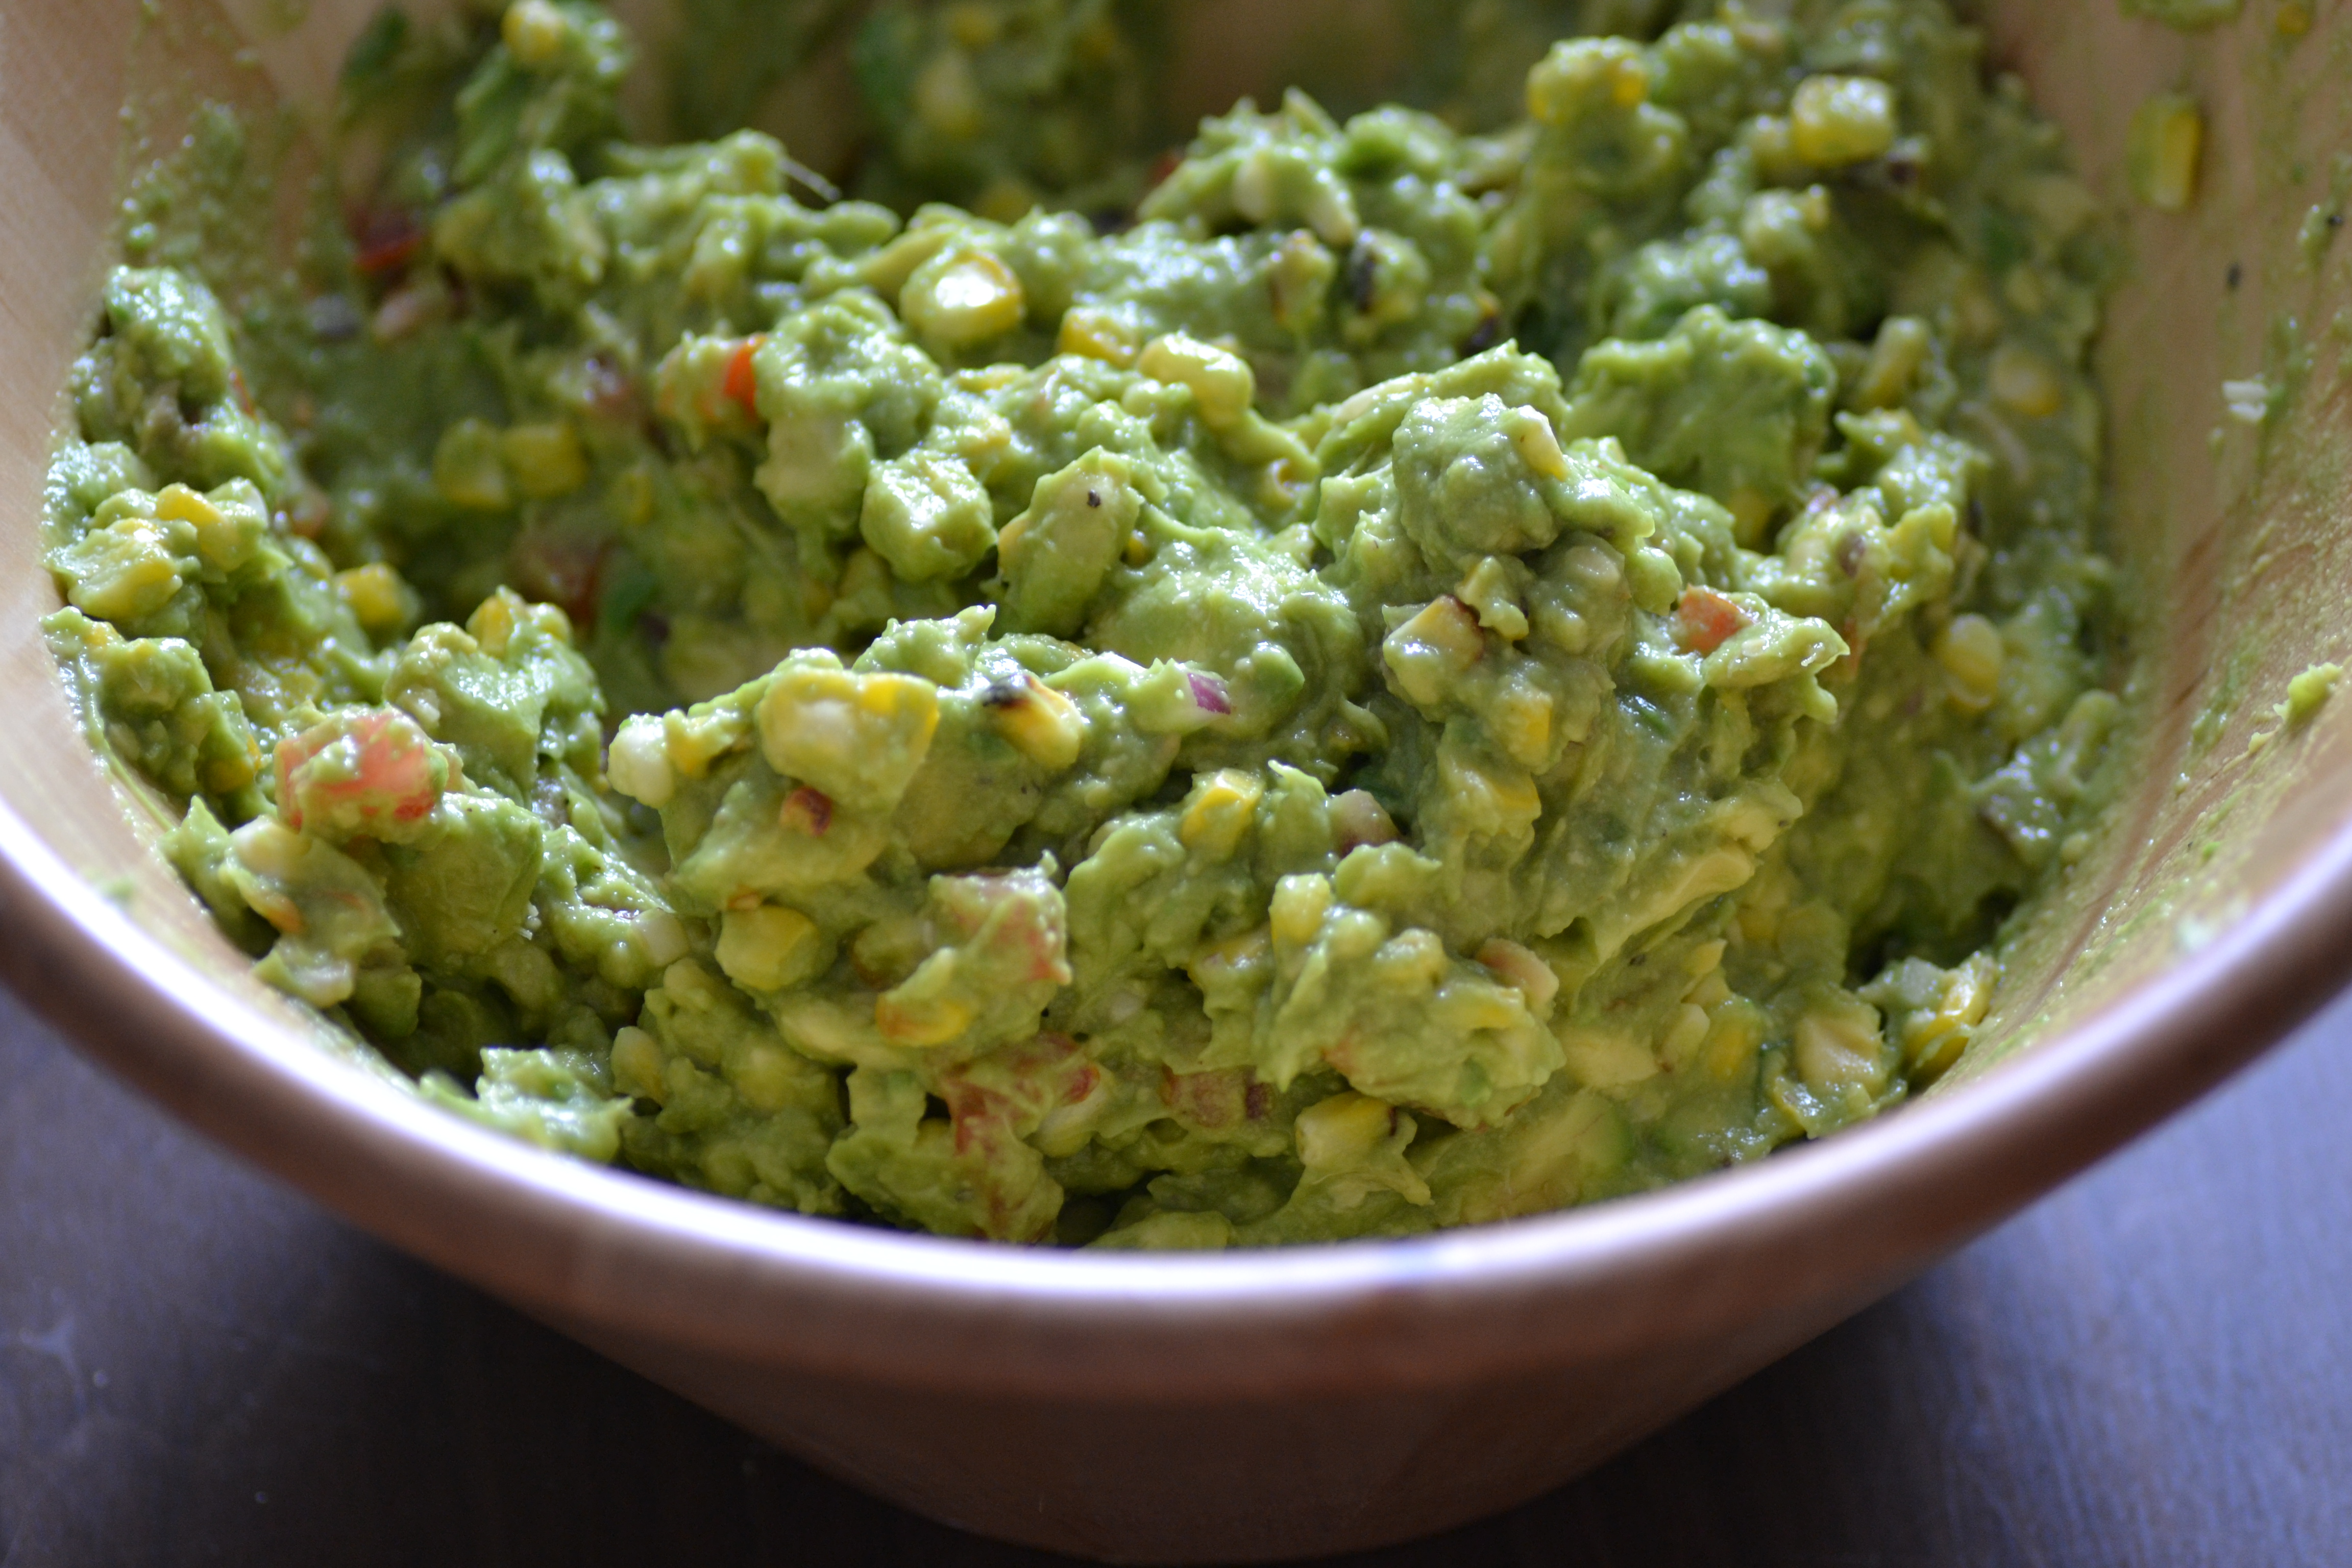 ... guacamole roasted corn red pepper guacamole guacamole recipe two peas